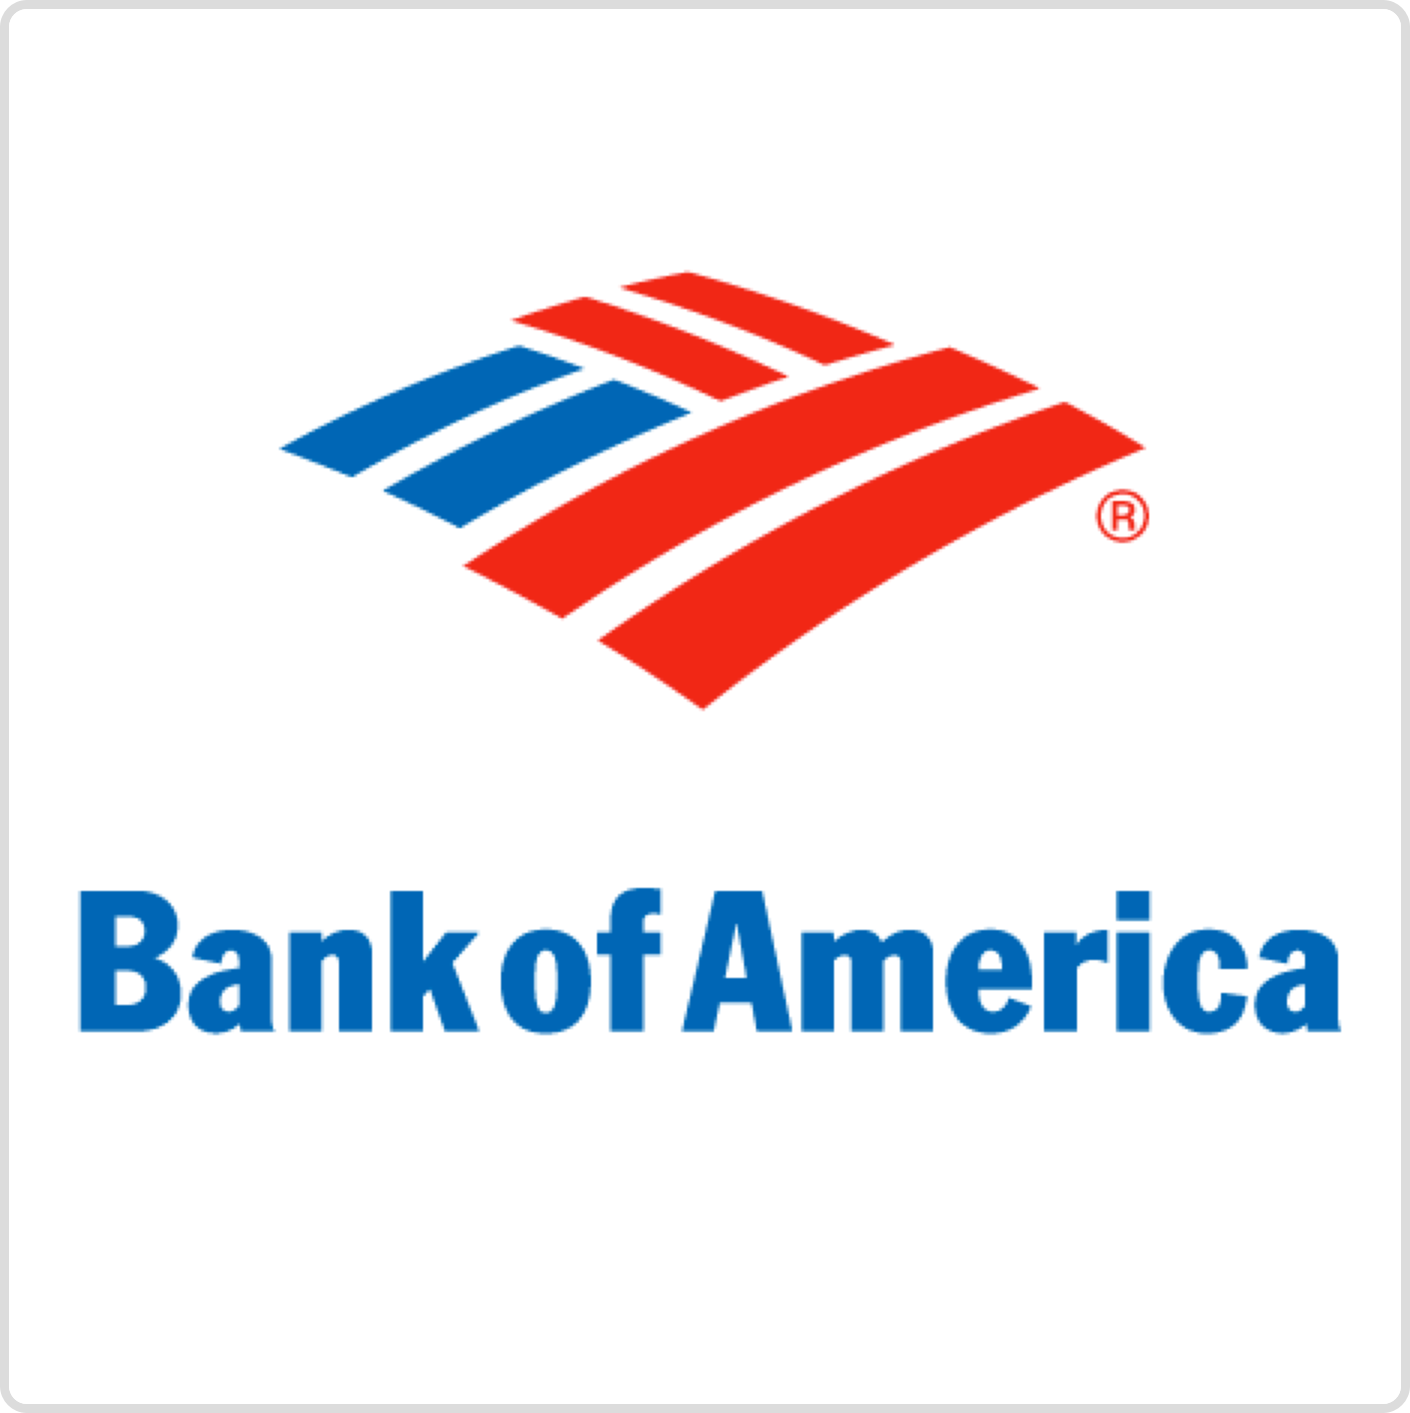 bank-of-america-logo-png-103-images-in-collection-page-2-bank-of-america-png-1410_1413